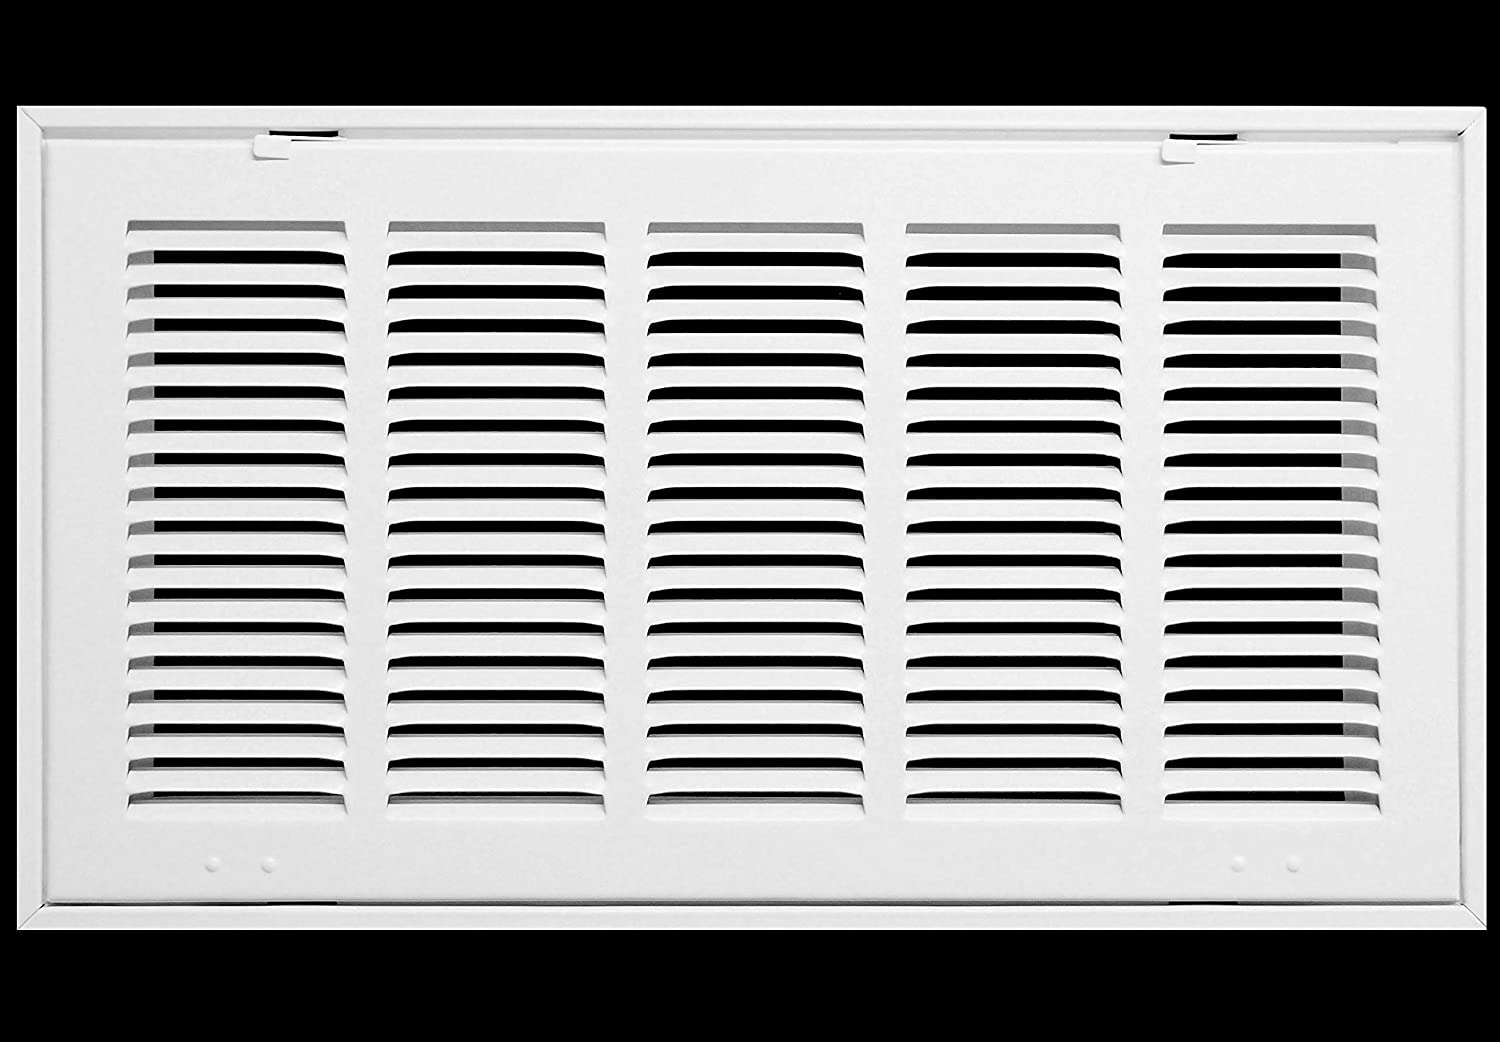 "20"" X 10 Steel Return Air Filter Grille for 1"" Filter - Fixed Hinged - Ceiling Recommended - HVAC Duct Cover - Flat Stamped Face - White [Outer Dimensions: 22.5 X 12.5]"